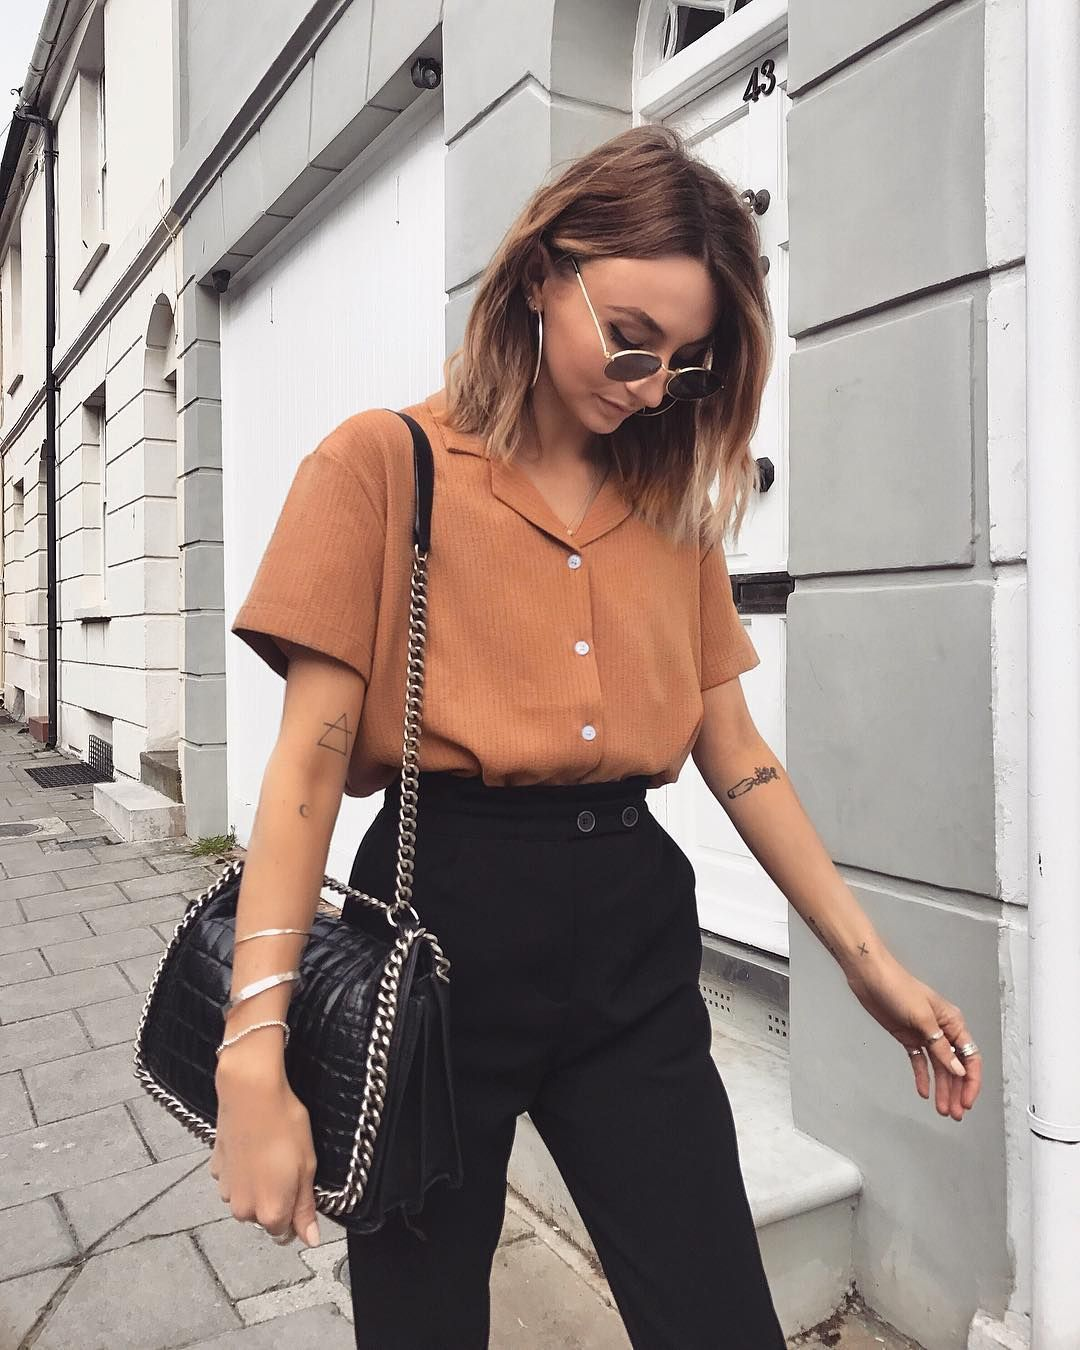 21 Cute Summer Outfit Ideas To Try Right Now